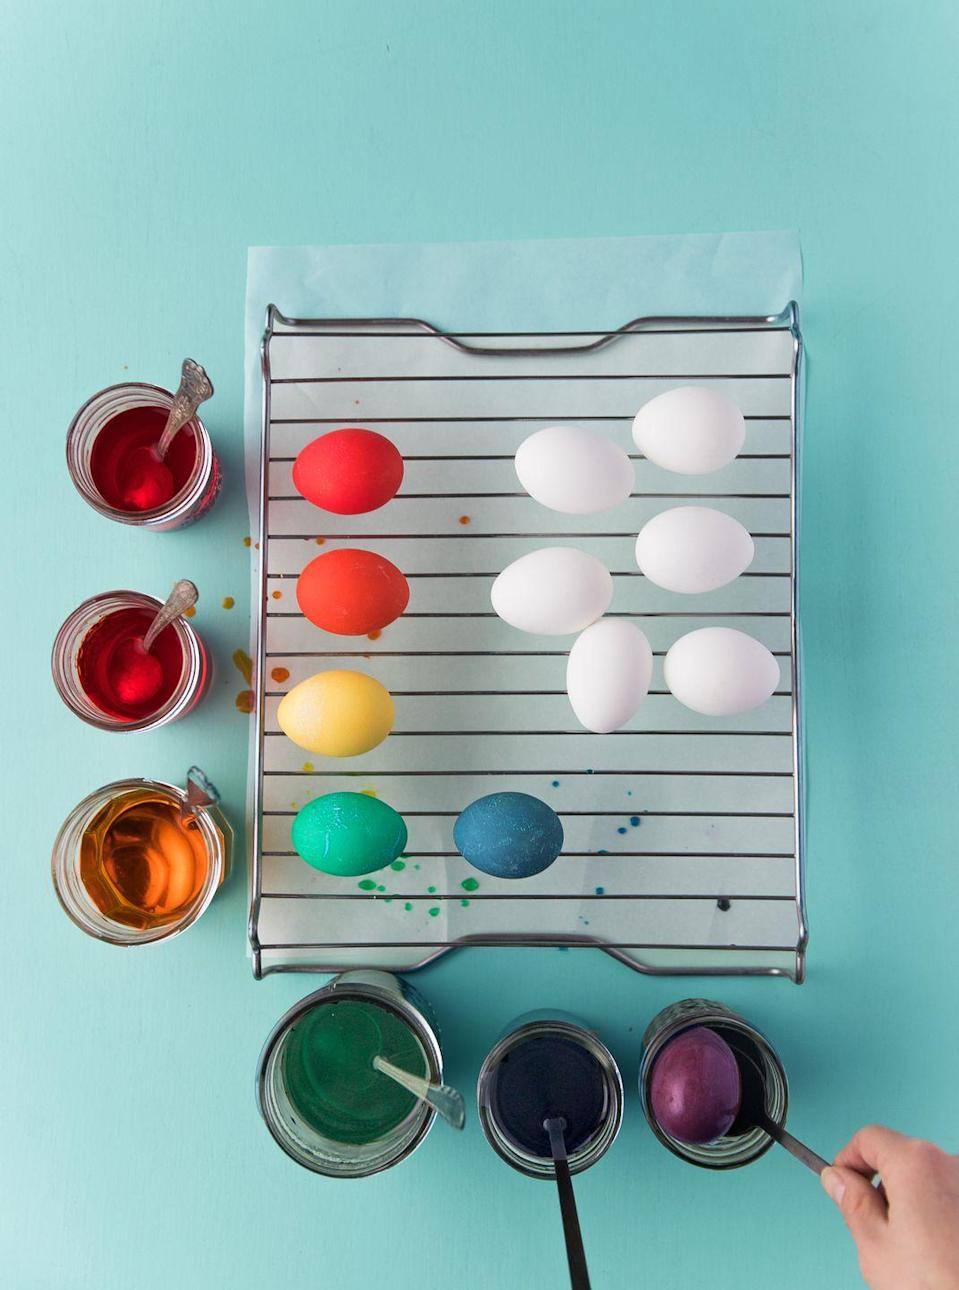 "<p>Place a wire cooling rack over a piece of parchment paper and gently lay your eggs on top. Don't try to wipe off or blot the eggs until they're completely dry!</p><p><a class=""link rapid-noclick-resp"" href=""https://go.skimresources.com/?id=74968X1525072&xs=1&isjs=1&url=https%3A%2F%2Fwww.amazon.com%2FCheckered-Chef-Cooling-Racks-Baking%2Fdp%2FB06X9KLW1P%2F%3Ftag%3Dcountryliving_auto-append-20%26ascsubtag%3D%5Bartid%7C10050.g.26810304%5Bsrc%7C%5Bch%7C%5Blt%7C&xguid=01CZ63M0HGZ95WGJYNW3QAZCC4&xuuid=9b4c55fb12baa50488d7e78338831f19&xcreo=0&xed=0&sref=https%3A%2F%2Fwww.countryliving.com%2Fpreview%2FeyJpZCI6IjAyN2U1ZjZhLWE5ZDAtNGRjNi1iOWQzLTdiMjU5NmMwYzljMyIsInR5cGUiOiJjb250ZW50IiwidmVyc2lvbiI6MCwidmVyc2lvbmVkIjpmYWxzZSwidmVyc2lvbl9jcmVhdGVkX2F0IjoiIn0%3D%2F&xtz=240&jv=13.13.8-stackpath&bv=2.5.1"" rel=""nofollow noopener"" target=""_blank"" data-ylk=""slk:SHOP COOLING RACKS"">SHOP COOLING RACKS</a></p>"